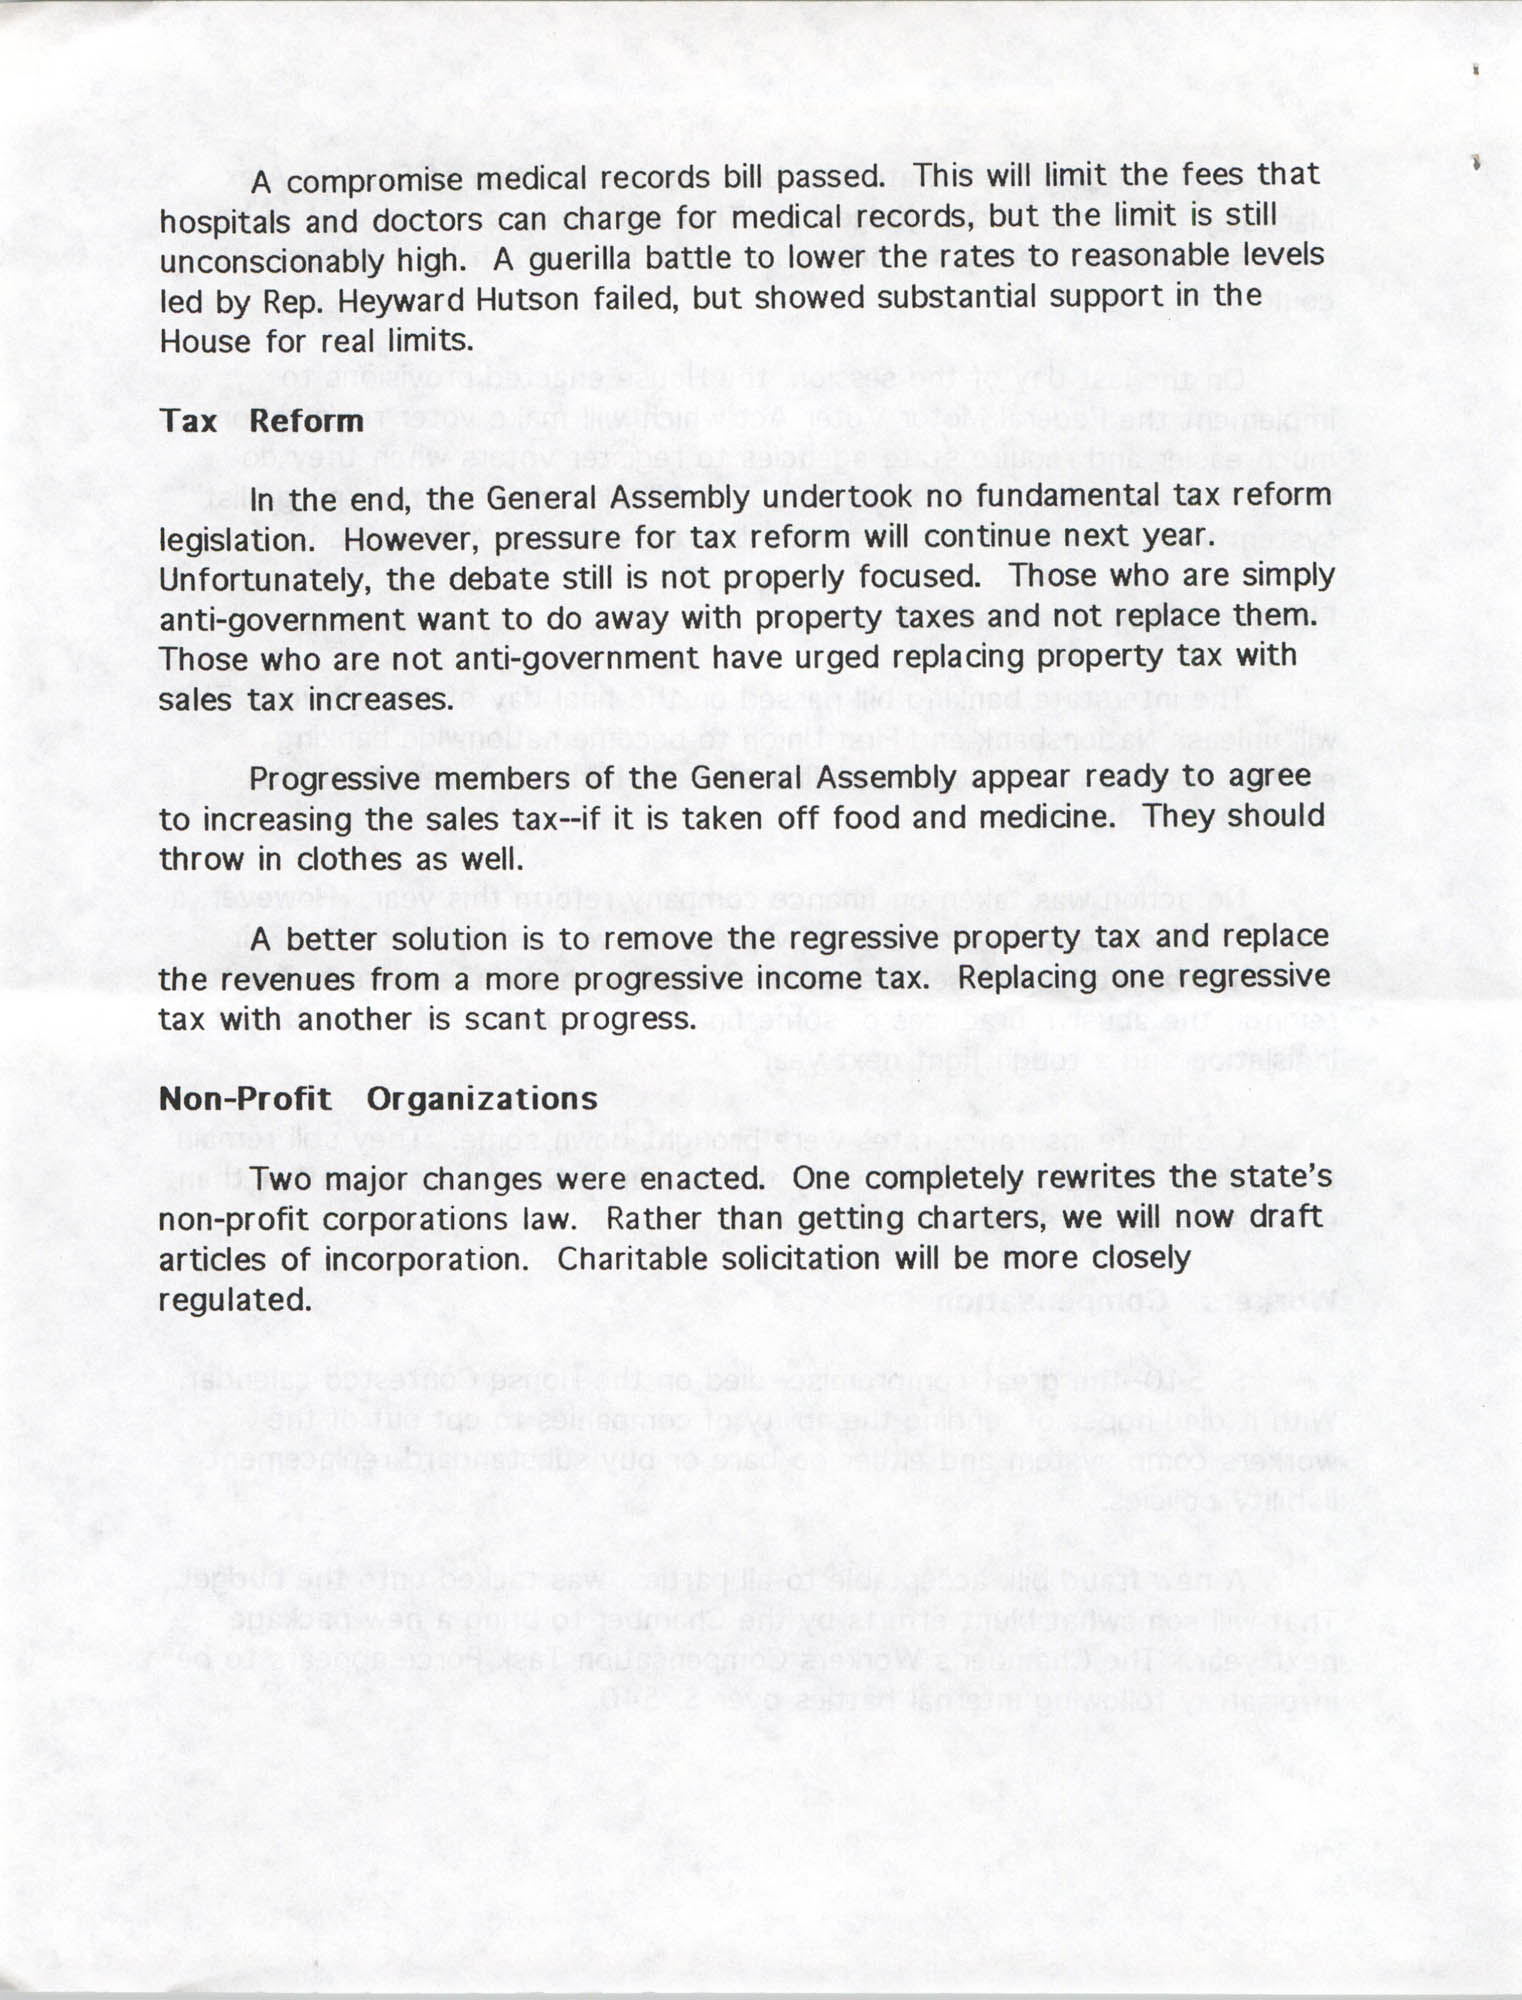 South Carolina Fair Share Legislative Update, June 30, 1994, Page 10